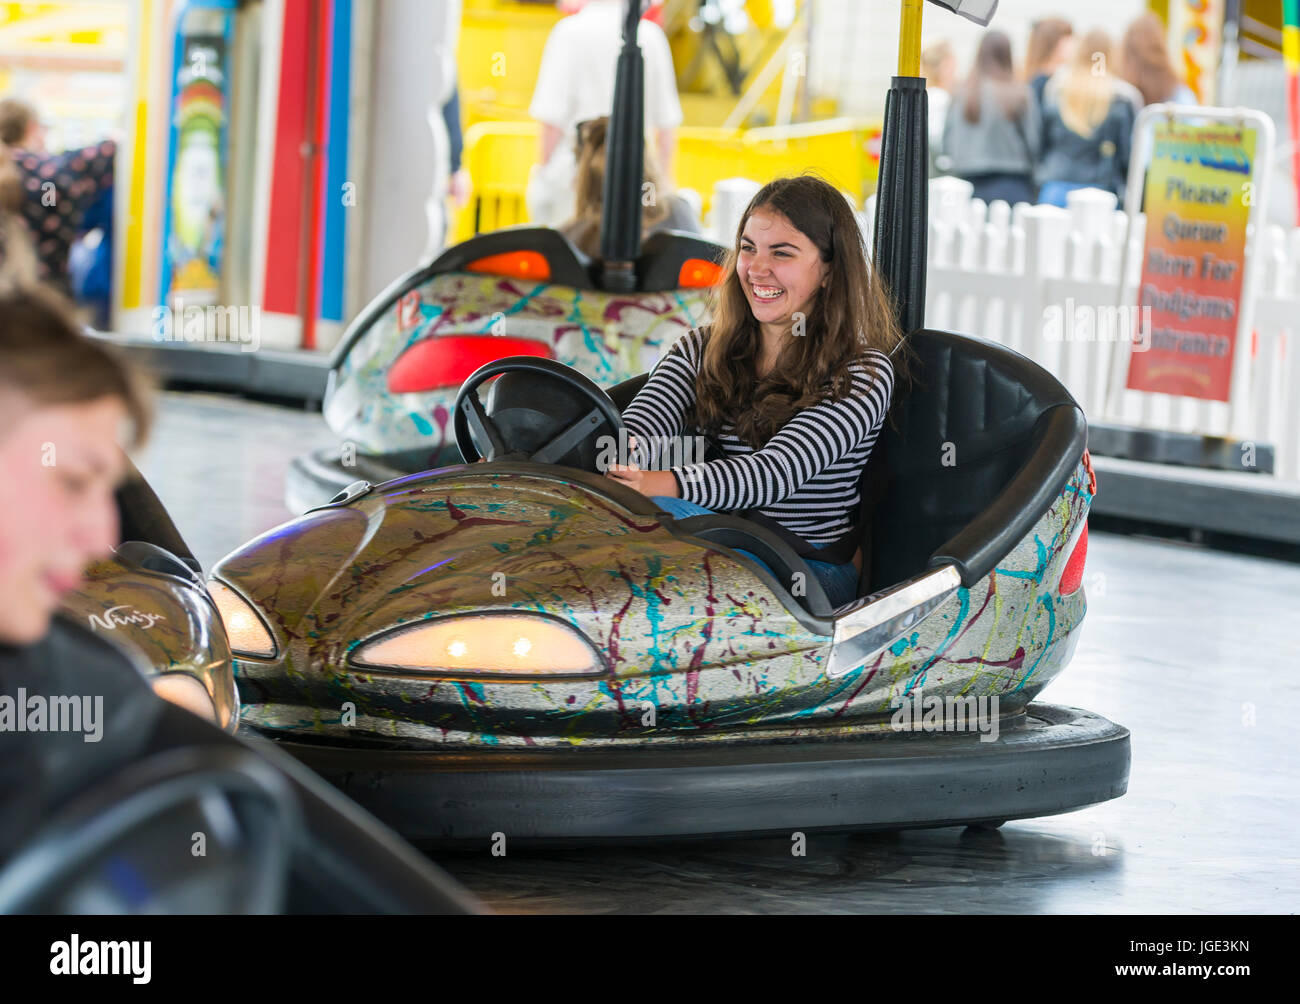 bumper-cars-young-girl-having-fun-at-the-fair-riding-on-the-dodgems-JGE3KN.jpg